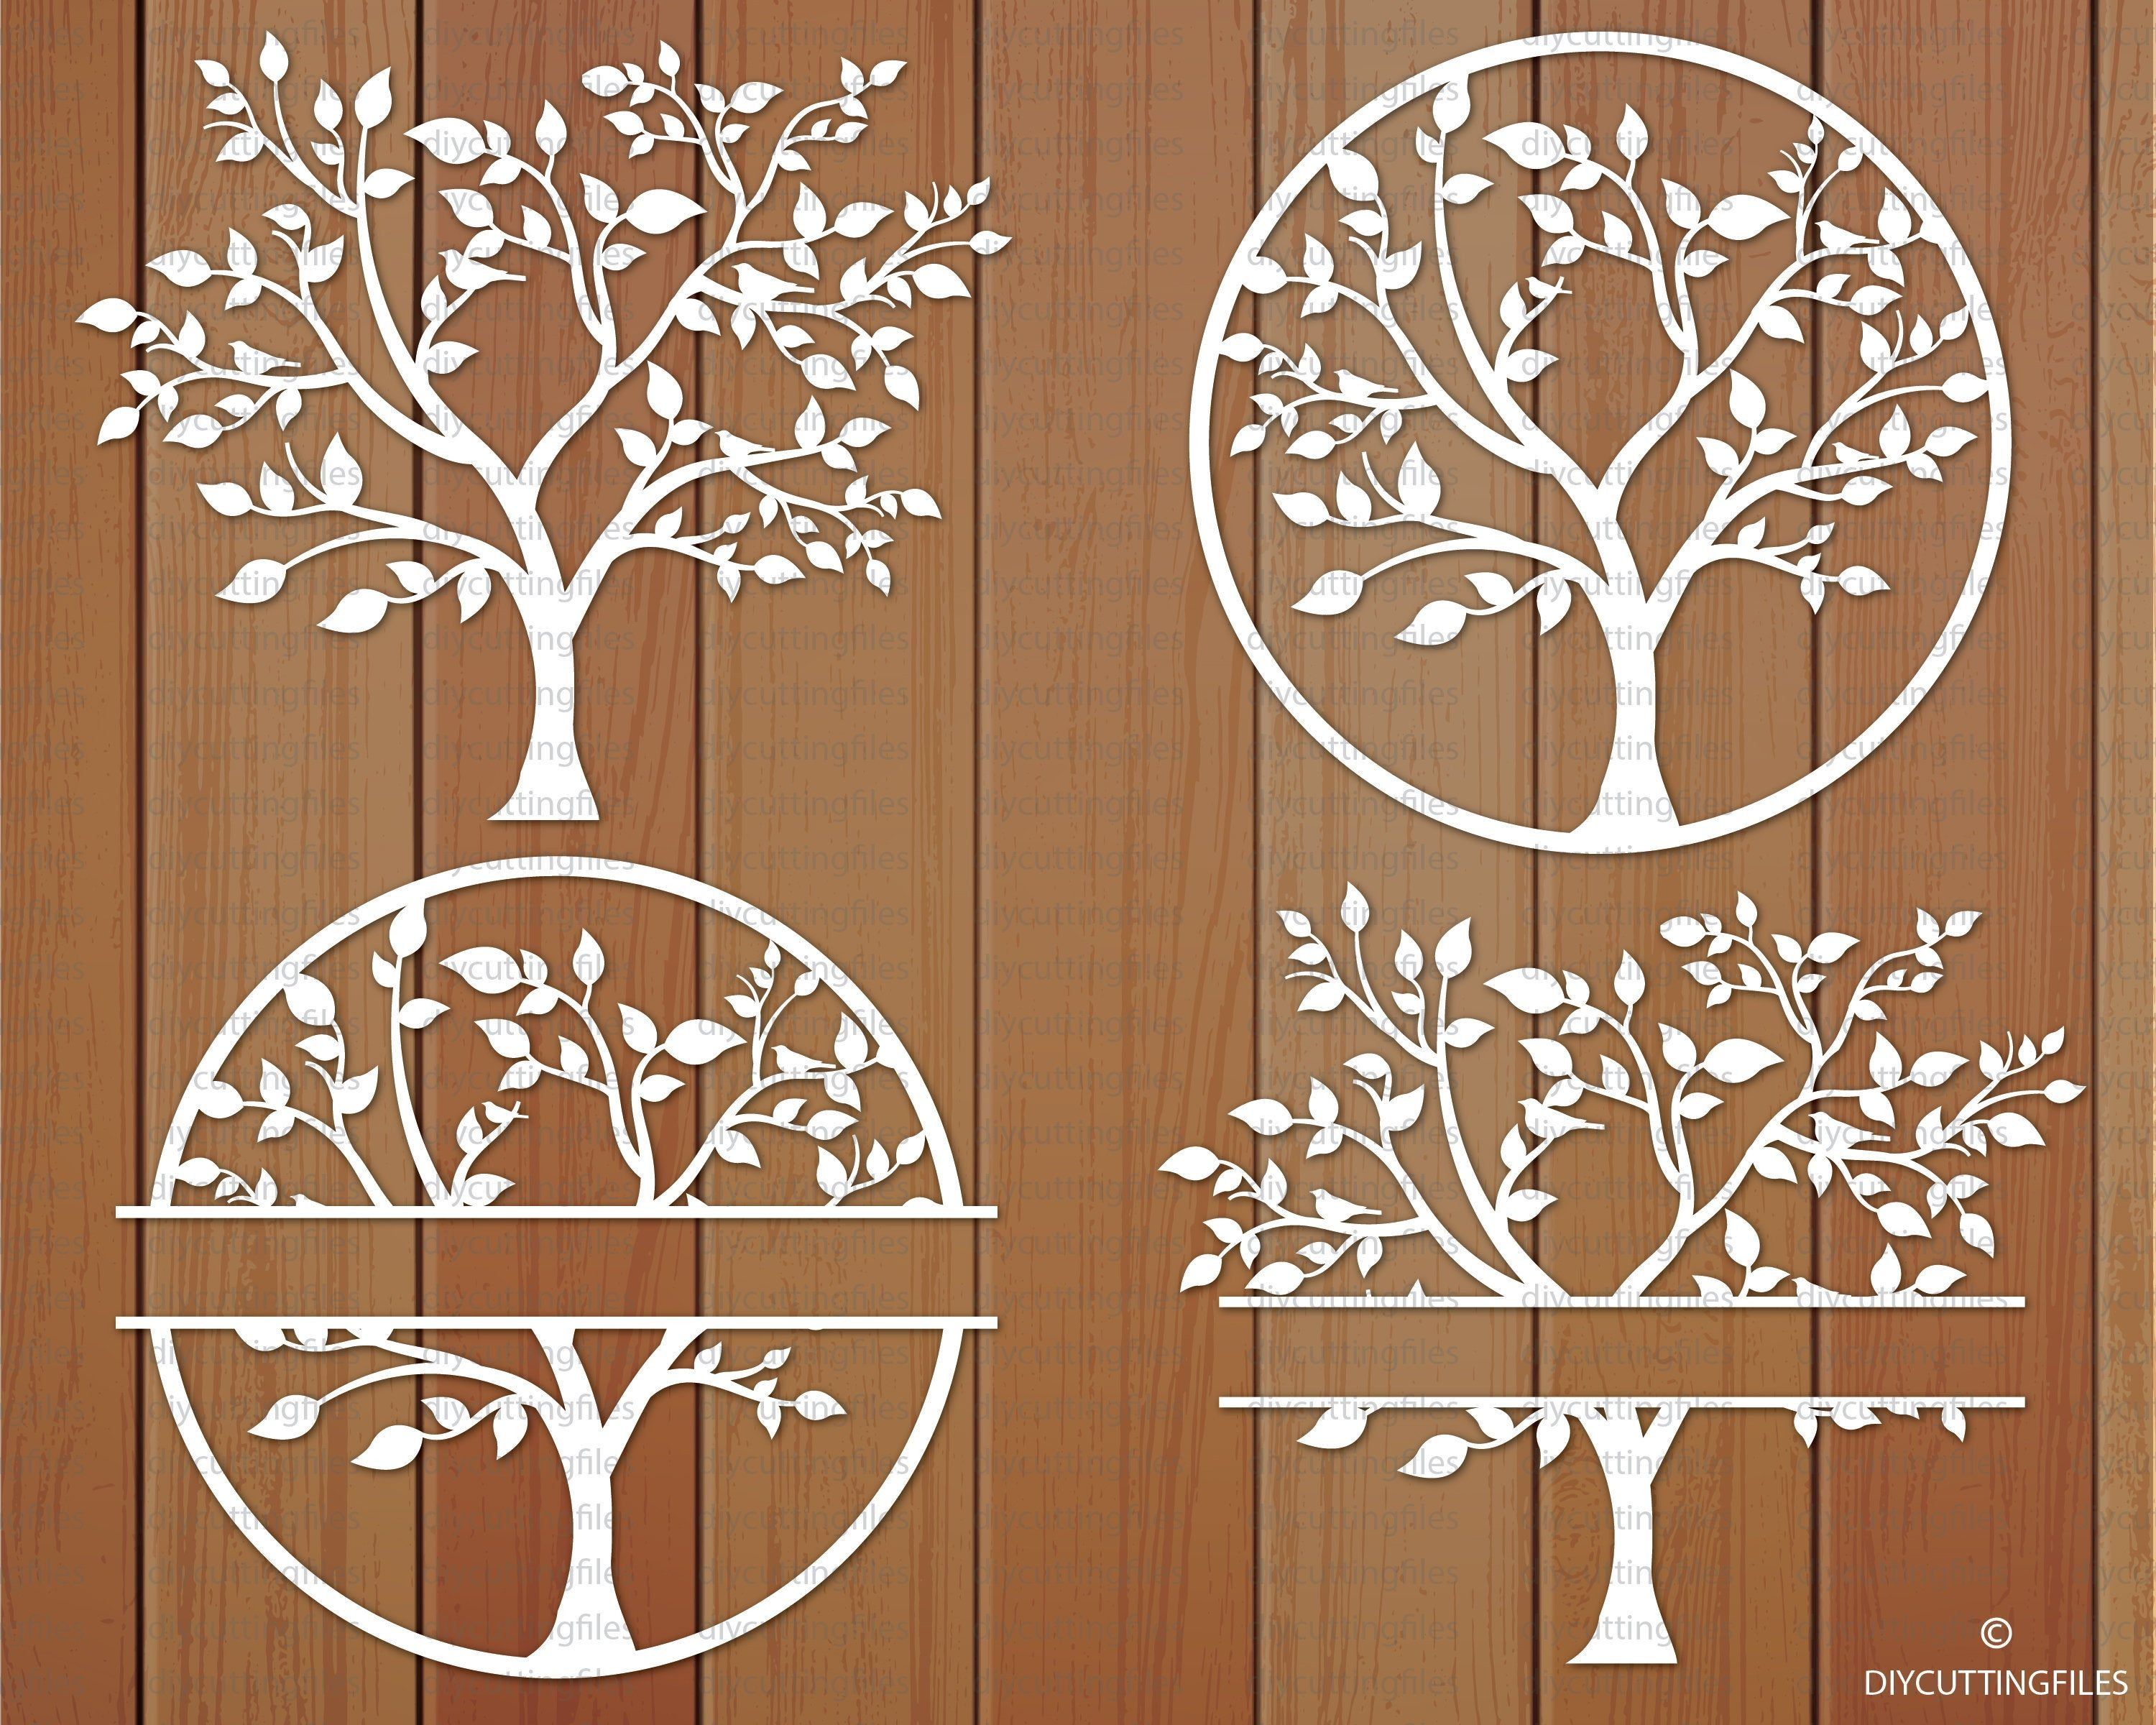 Tree of life svg, Split tree of life, Tree of life logo, Tree cut file, Tree Cricut Svg, Tree Paper cut template, Tree Paper cut svg For personal and commercial use. Original designs in SVG, PNG, EPS formats. - This design is for hand and machine cutting as it includes both SVG and PNG files. This item is a digital file, please note, no physical item will be sent. - After purchasing a digital file, you'll see a View your files link which goes to the Downloads page. INCLUDED IN THIS ZIP FILE: 4 SVG file 4 PNG files 4 EPS file 4 JPEG FILE 1 DXF FILE - with 4 tree files 1 AI FILE  - with 4 tree files 1 PDF FILE - with 4 tree files These designs can be cut from different materials: paper, regular and heat transfer vinyl, stencil material etc. Just download the files you like and cut them using your cutting machine (Cricut, Silhouette etc.). You can use these designs for DIY projects, heat transfer designs on t-shirts and bags, create your own gift packaging, decorate notebook covers, in interior design (decorate walls or canvases) decorate furniture and various household items, scrap booking, decorate photographs, use as a part of a framed paper cut out. TERMS & CONDITIONS DO NOT PASS ON/DISTRIBUTE, COPY or ALTER the design in any way. If you would like to use SVG format of this design to cut using your cutting machine, please make sure this format is compatible with your machine before purchasing. No refunds will be issued on digital items. - This item is a digital file, please note, no physical item will be sent. FOR PERSONAL and COMMERCIAL USE ONLY. Allowed up to 100 paper cuts/artworks produced from this template to be sold. You can use other materials, such as vinyl or wood. Please always give credit for the produced designs from this template and photographs taken of it to DIY CUTTING FILES. - DO NOT PASS ON/DISTRIBUTE, SELL, COPY or ALTER the design in any way. If you have any questions, please let me know!